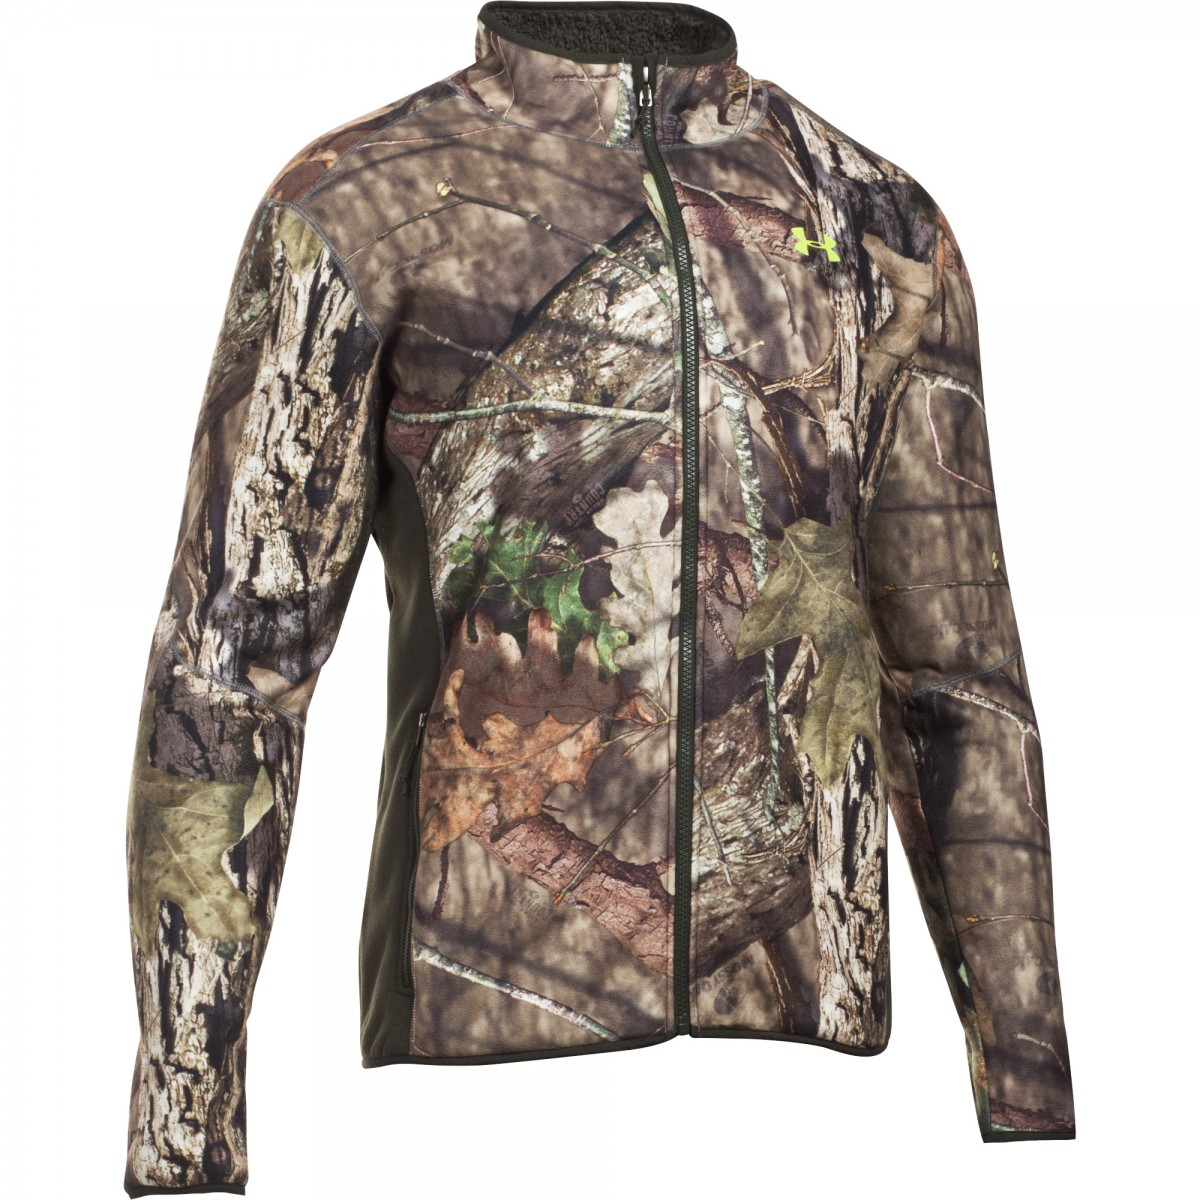 c10f364d1db3b ... Under Armour Men's Stealth Jacket. Break-Up Country